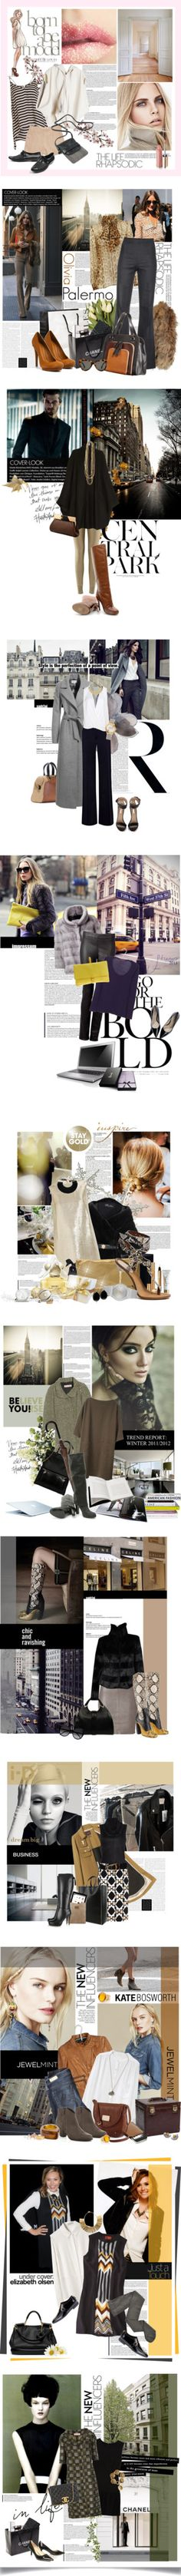 """Magdafunk 2"" by ovidija ❤ liked on Polyvore"